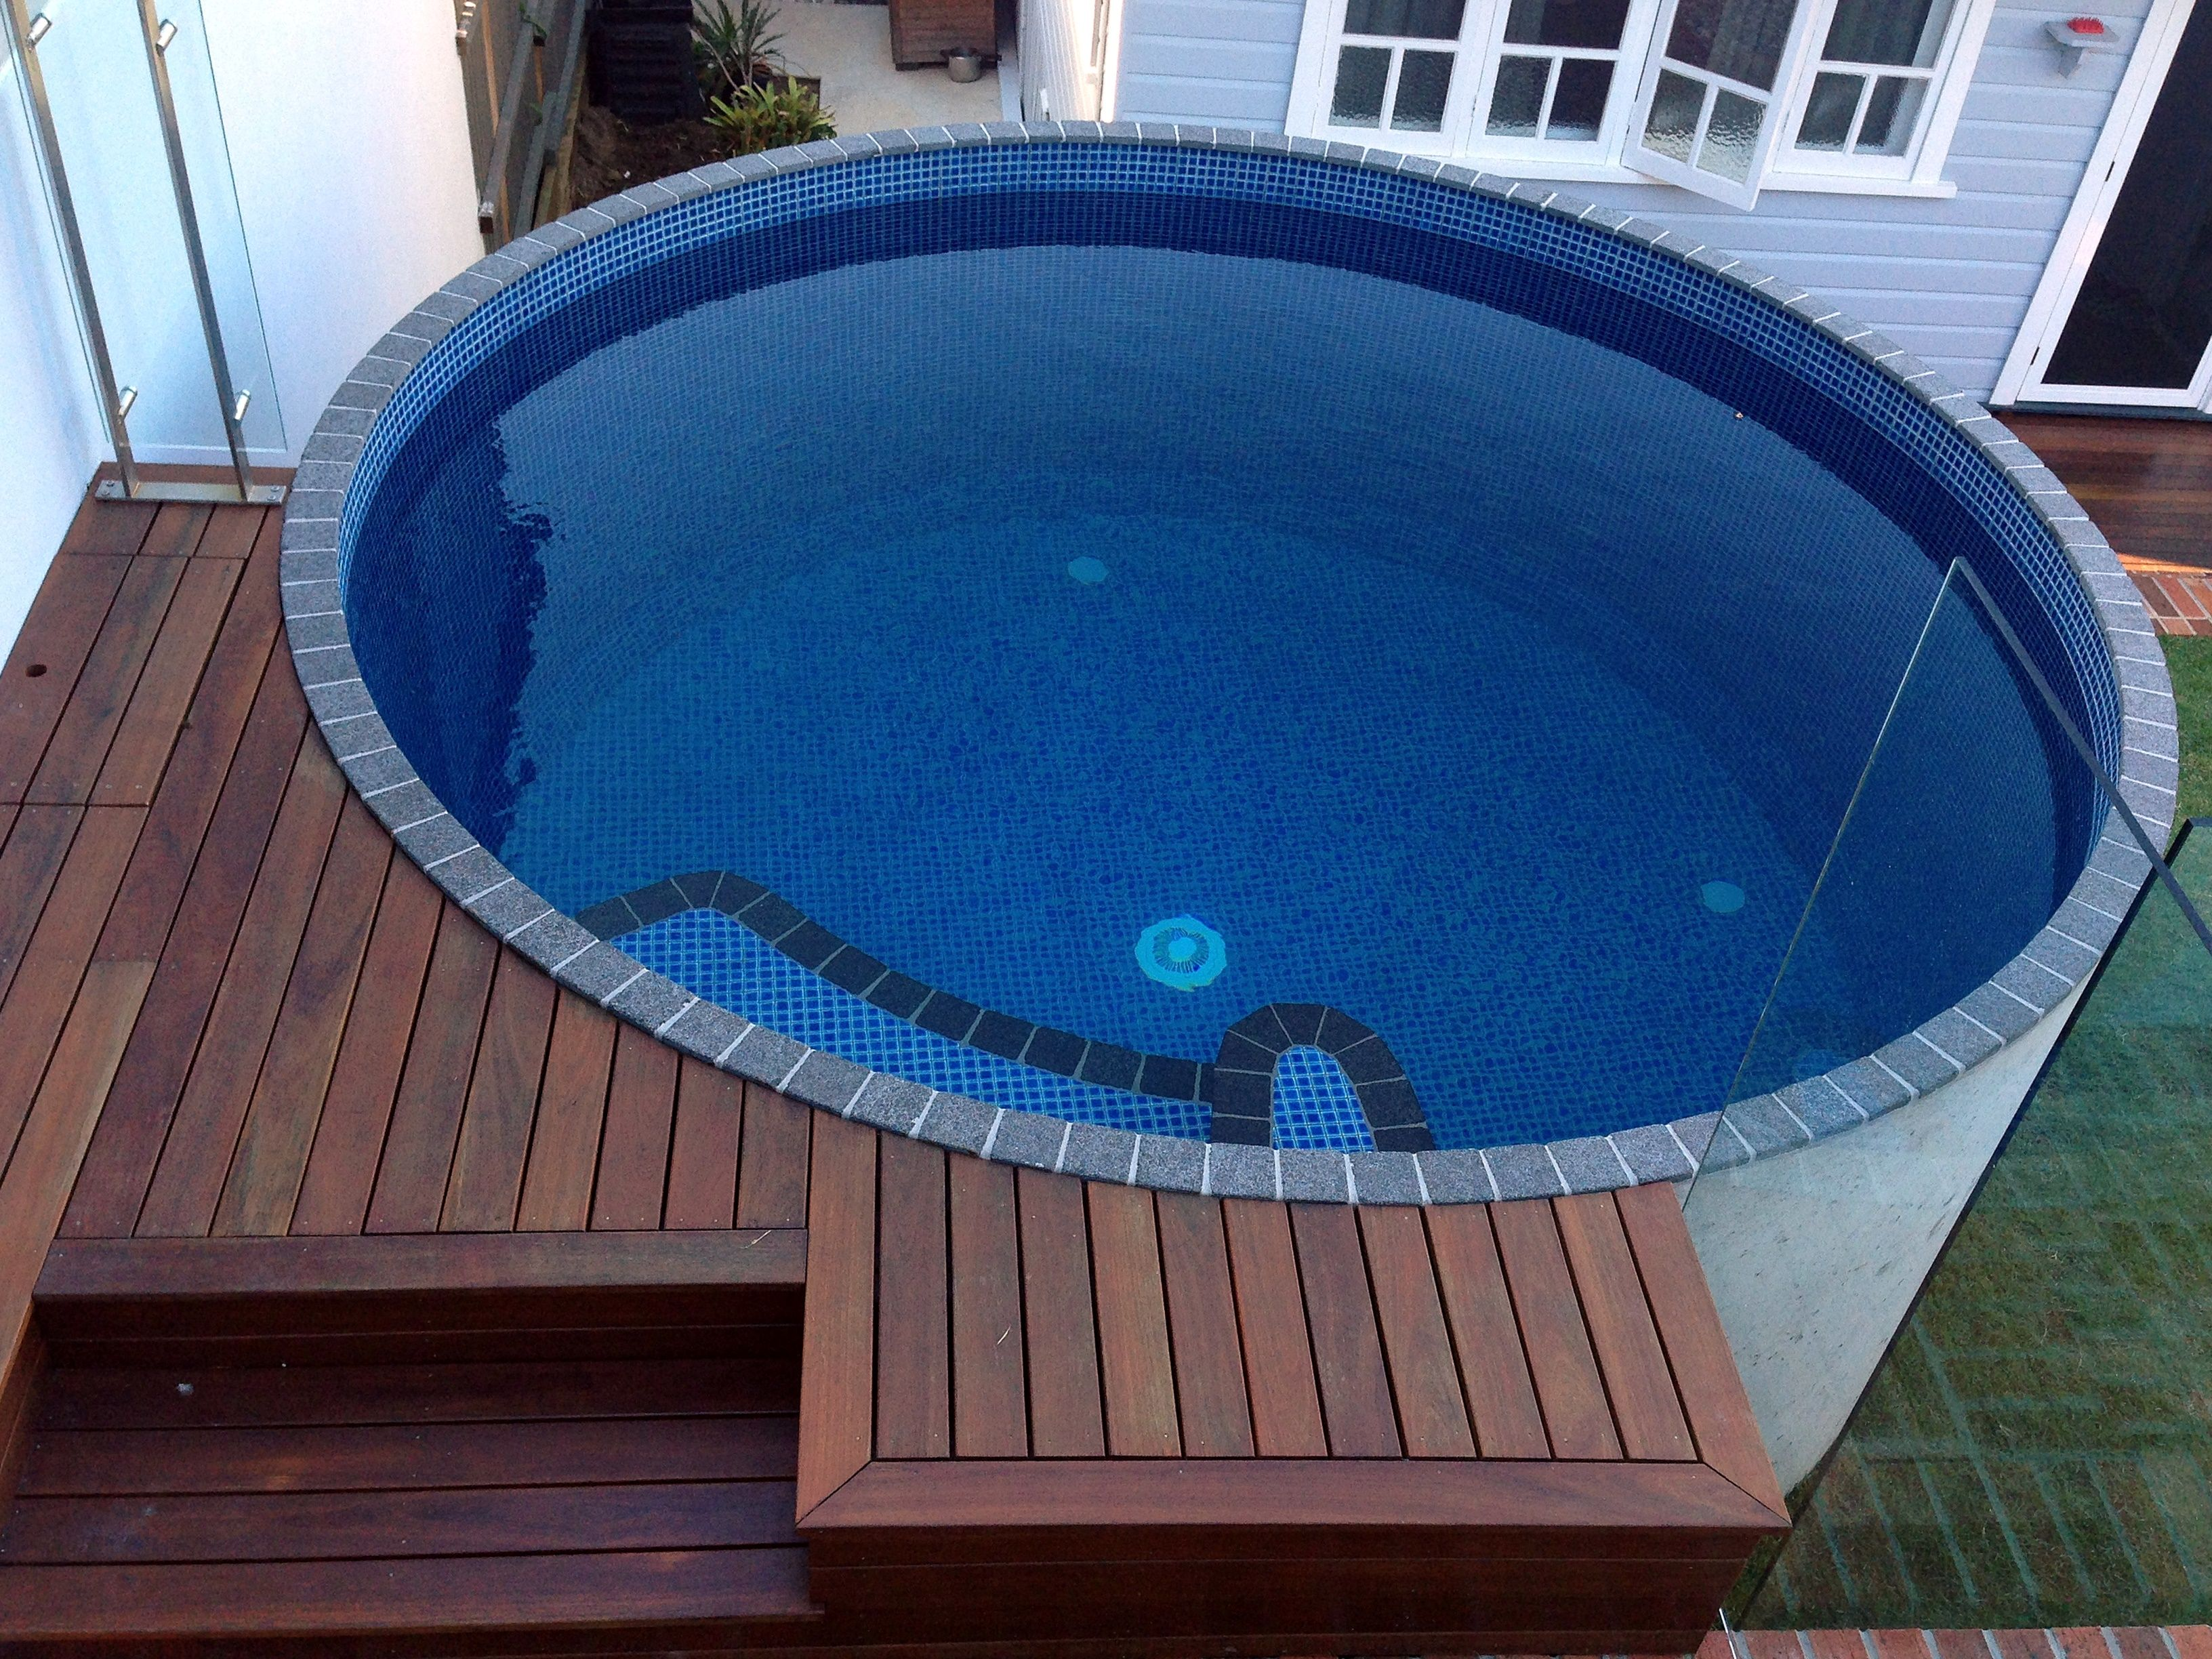 Brisbane australian plunge pool australian plunge pools for Pool design brisbane